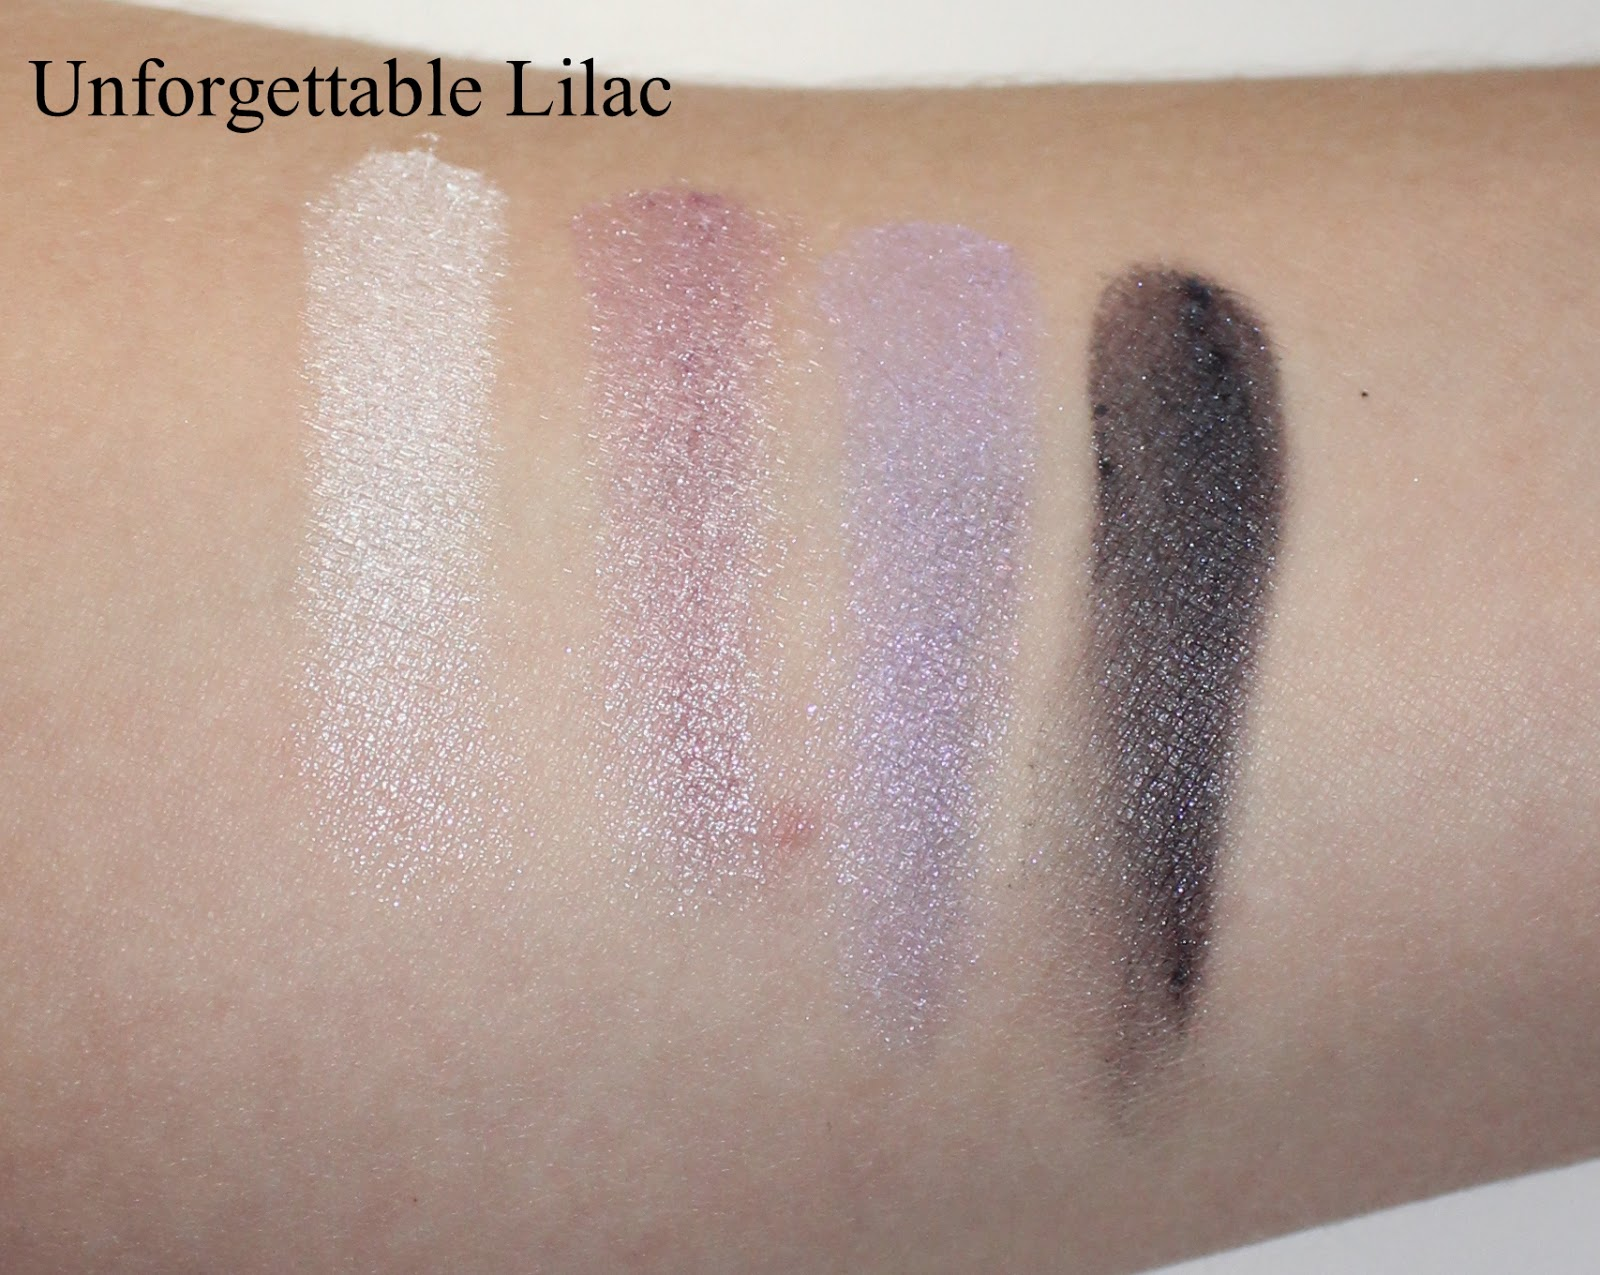 L'Oréal Colour Riche Wet Eyeshadow in Unforgettable Lilac Swatches